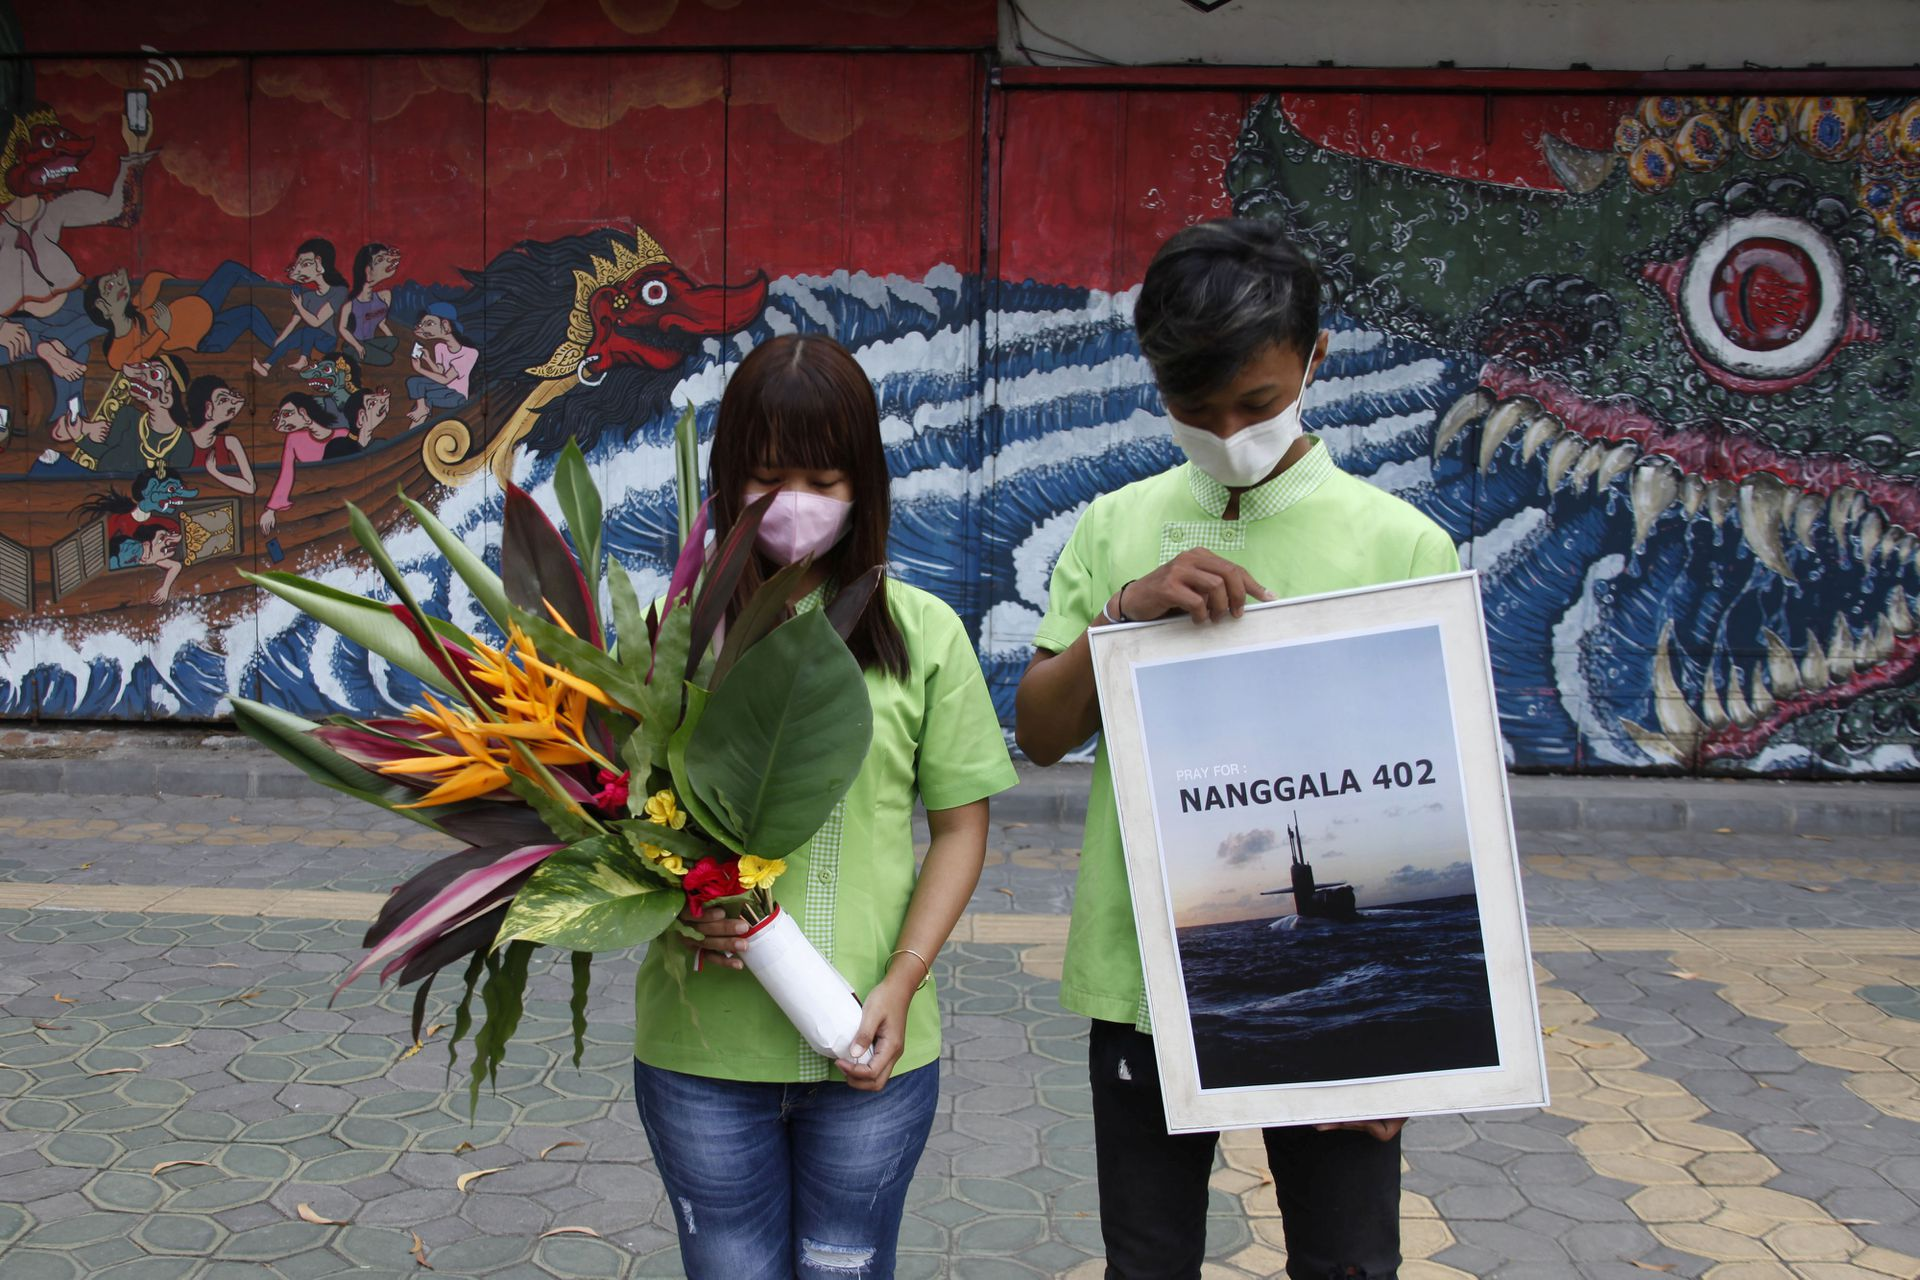 People holding a placard and flowers bow as they pray for the crew of submarine KRI Nanggala-402 which has sunk at the north of Bali sea, during a vigil in Solo, Central Java province, Indonesia, April 25, 2021 in this photo taken by Antara Foto. Photo: Antara Foto/Maulana Surya/ via Reuters